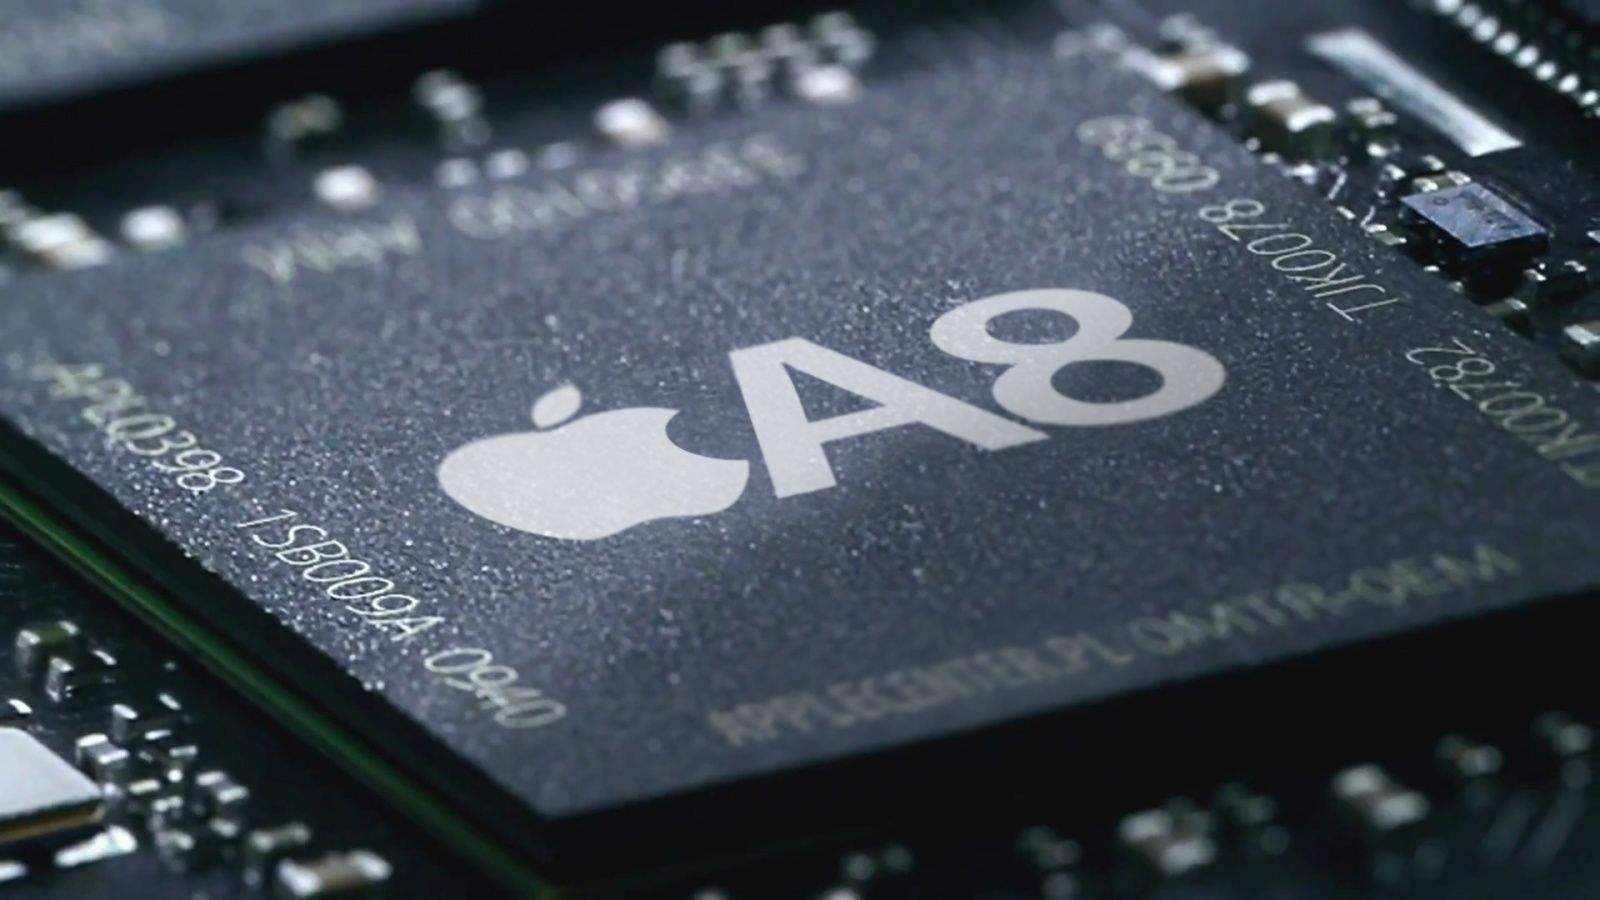 More Info About Apple's New AI Chip